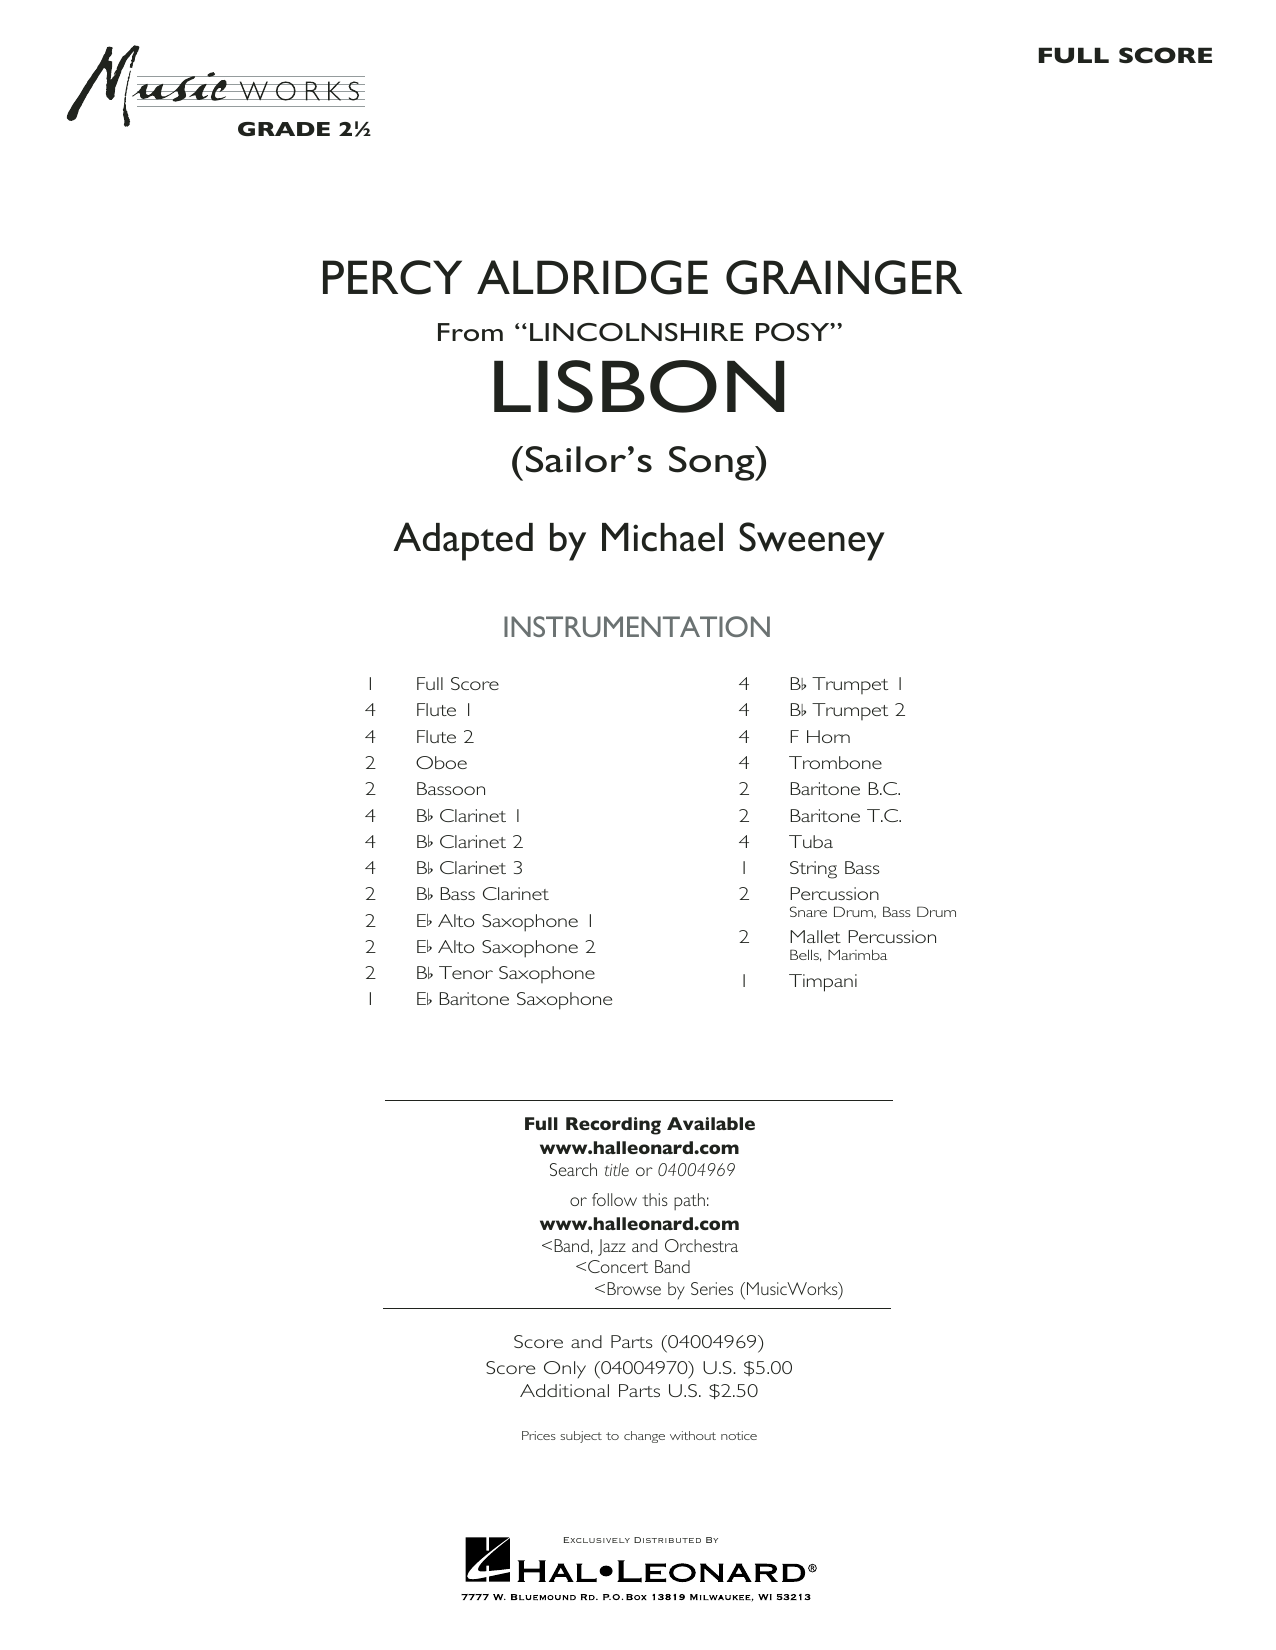 Lisbon (from Lincolnshire Posy) - Conductor Score (Full Score) Sheet Music